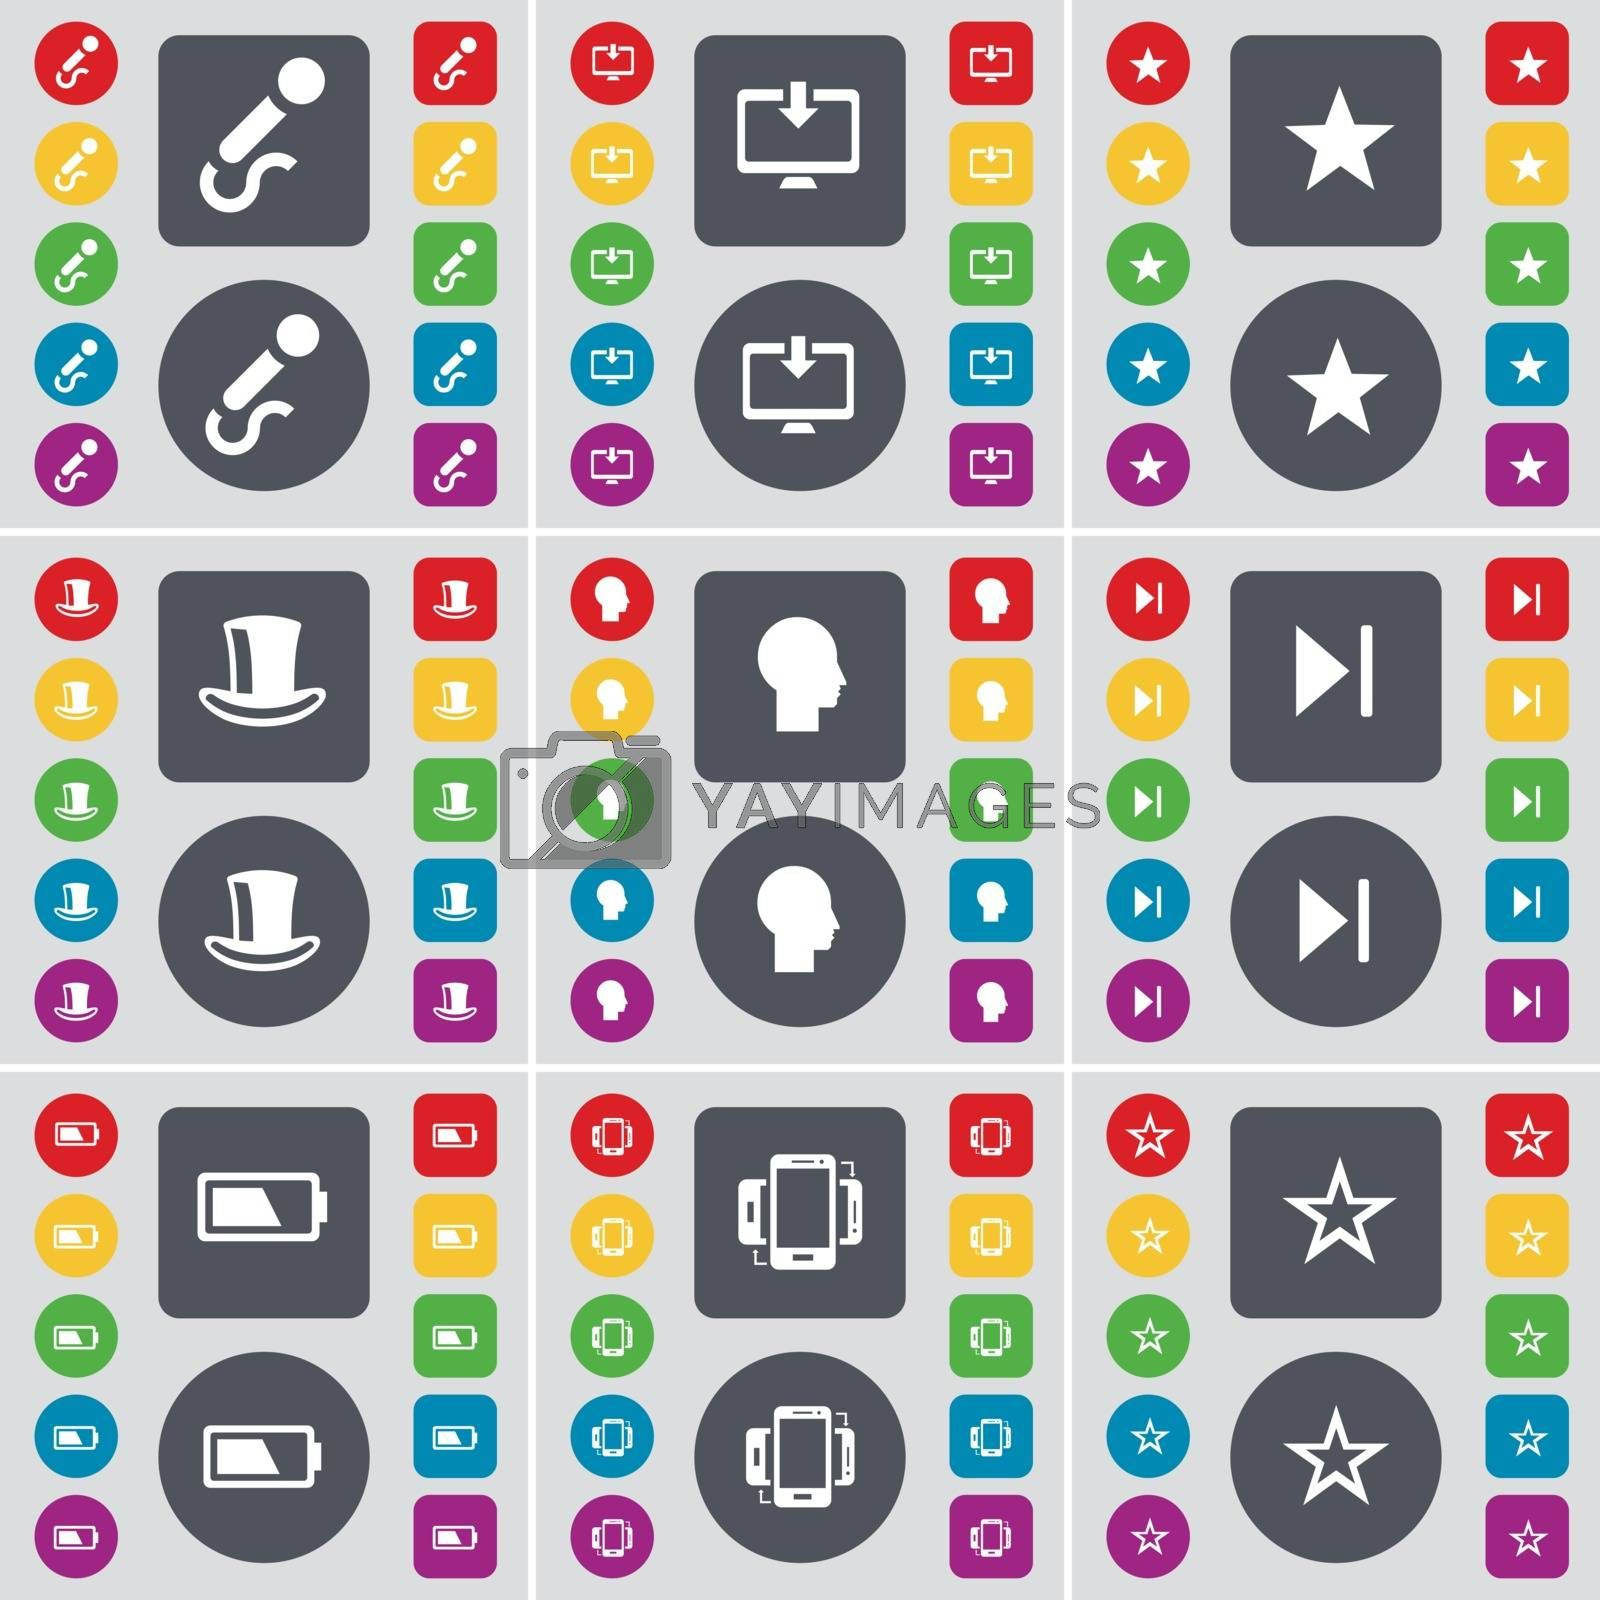 Royalty free image of Microphone, Monitor, Star, Silk hat, Silhouette, Media skip, Battery, Smartphone, Star icon symbol. A large set of flat, colored buttons for your design. Vector by serhii_lohvyniuk